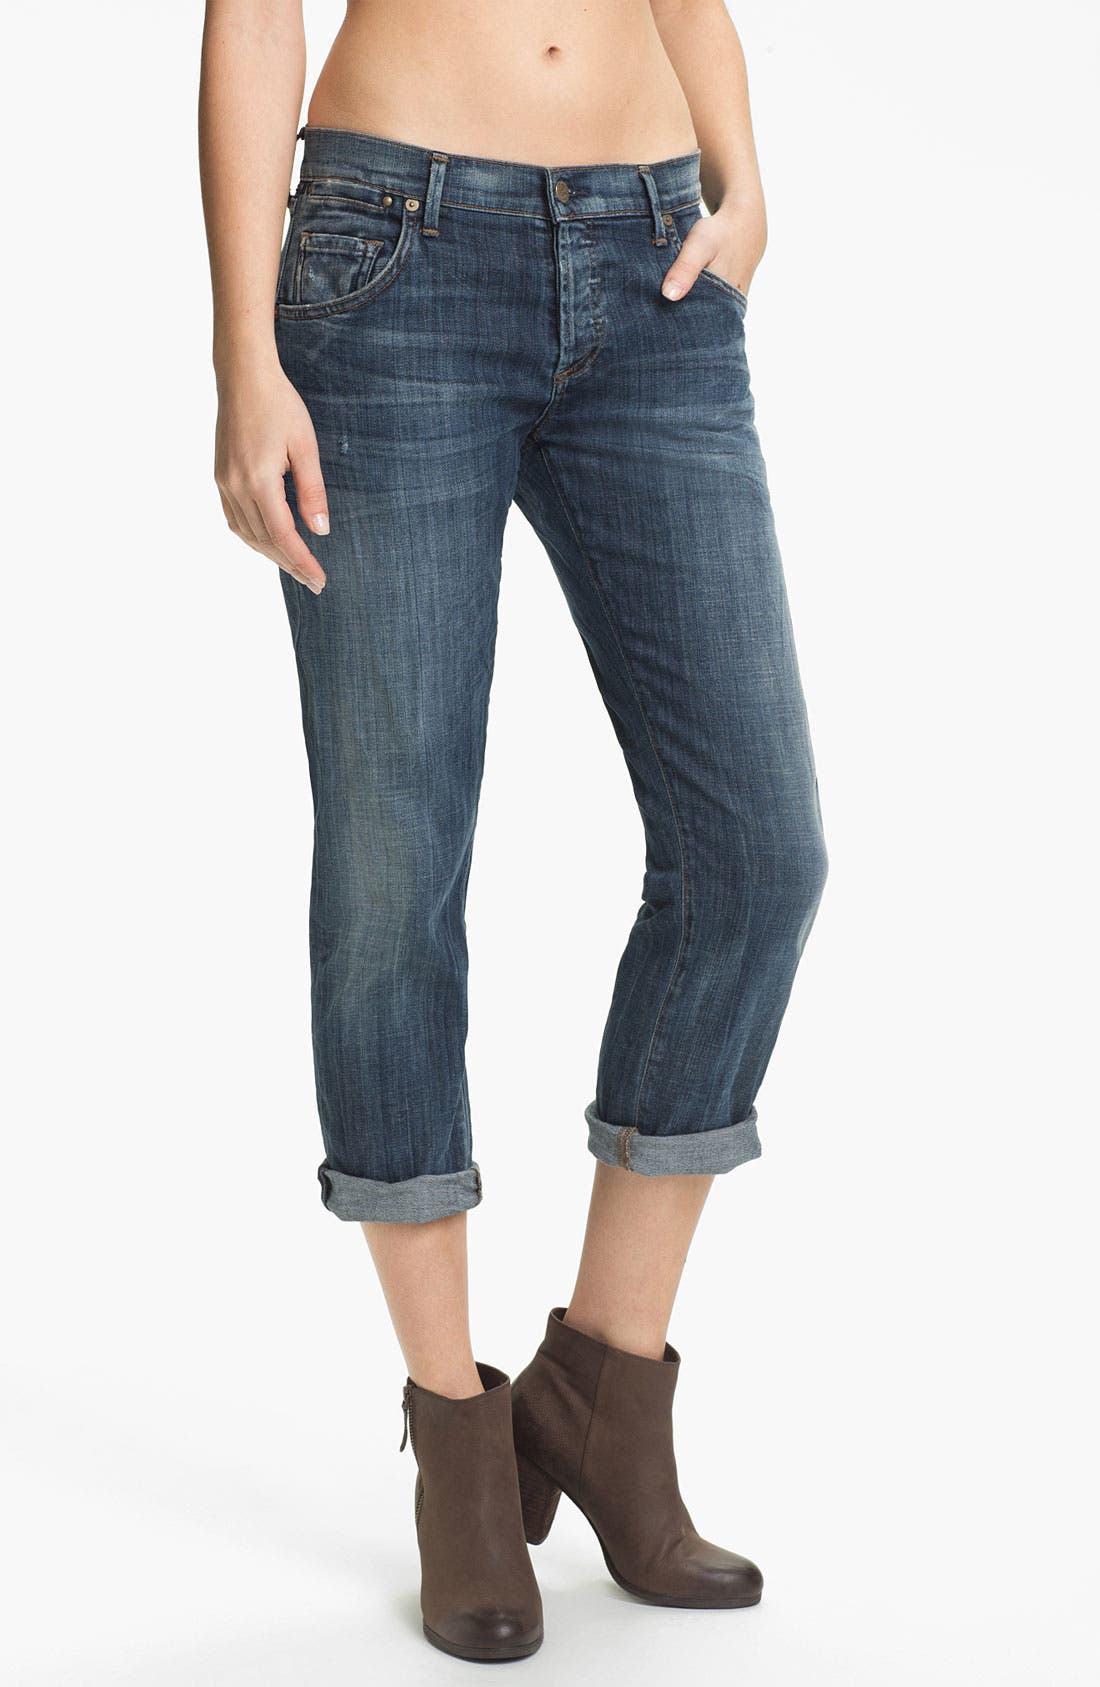 Alternate Image 1 Selected - Citizens of Humanity 'Dylan' Crop Relaxed Fit Jeans (Drama)